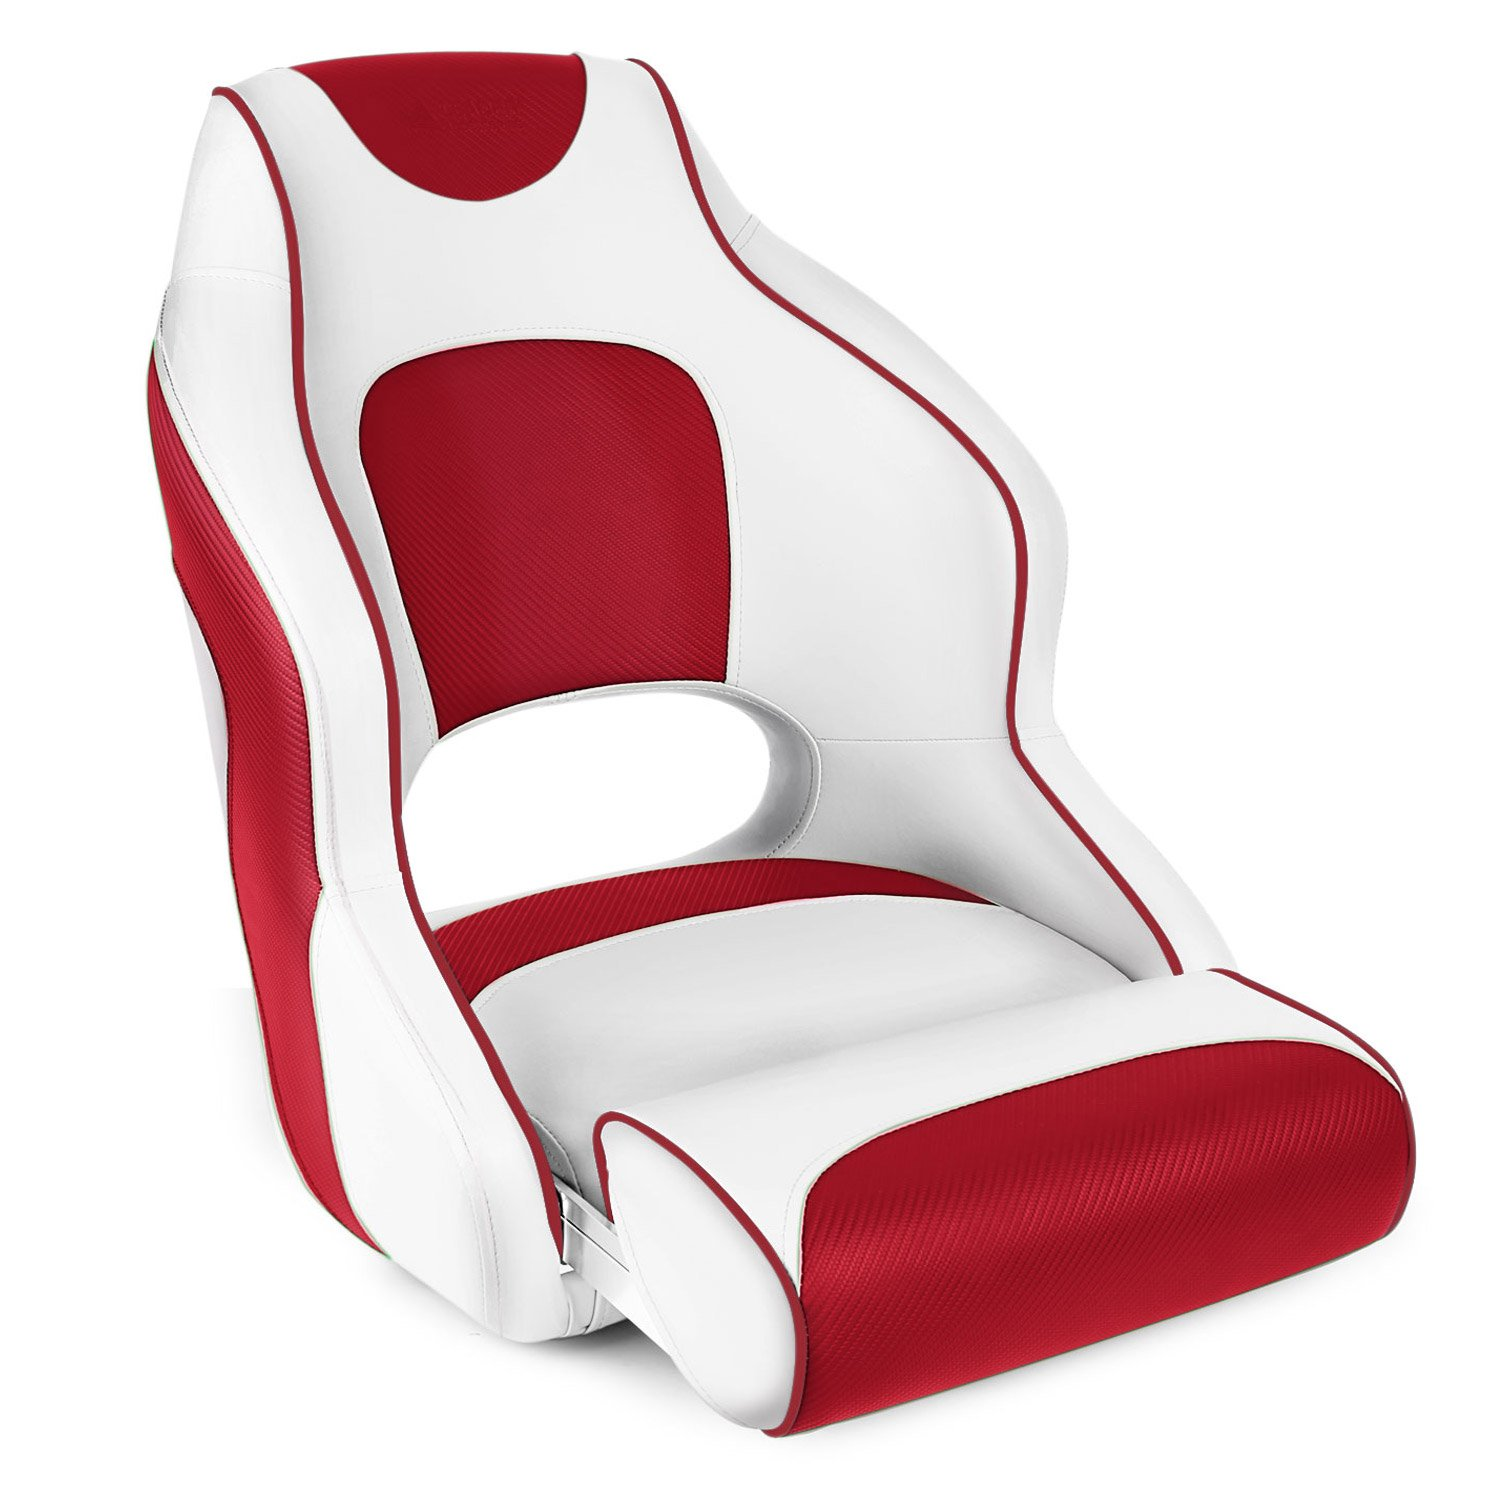 Leader Accessories Two Tone Captain's Bucket Seat Boat Seat Premium Sports Flip Up Boat Seat(White/Red,Red Piping)